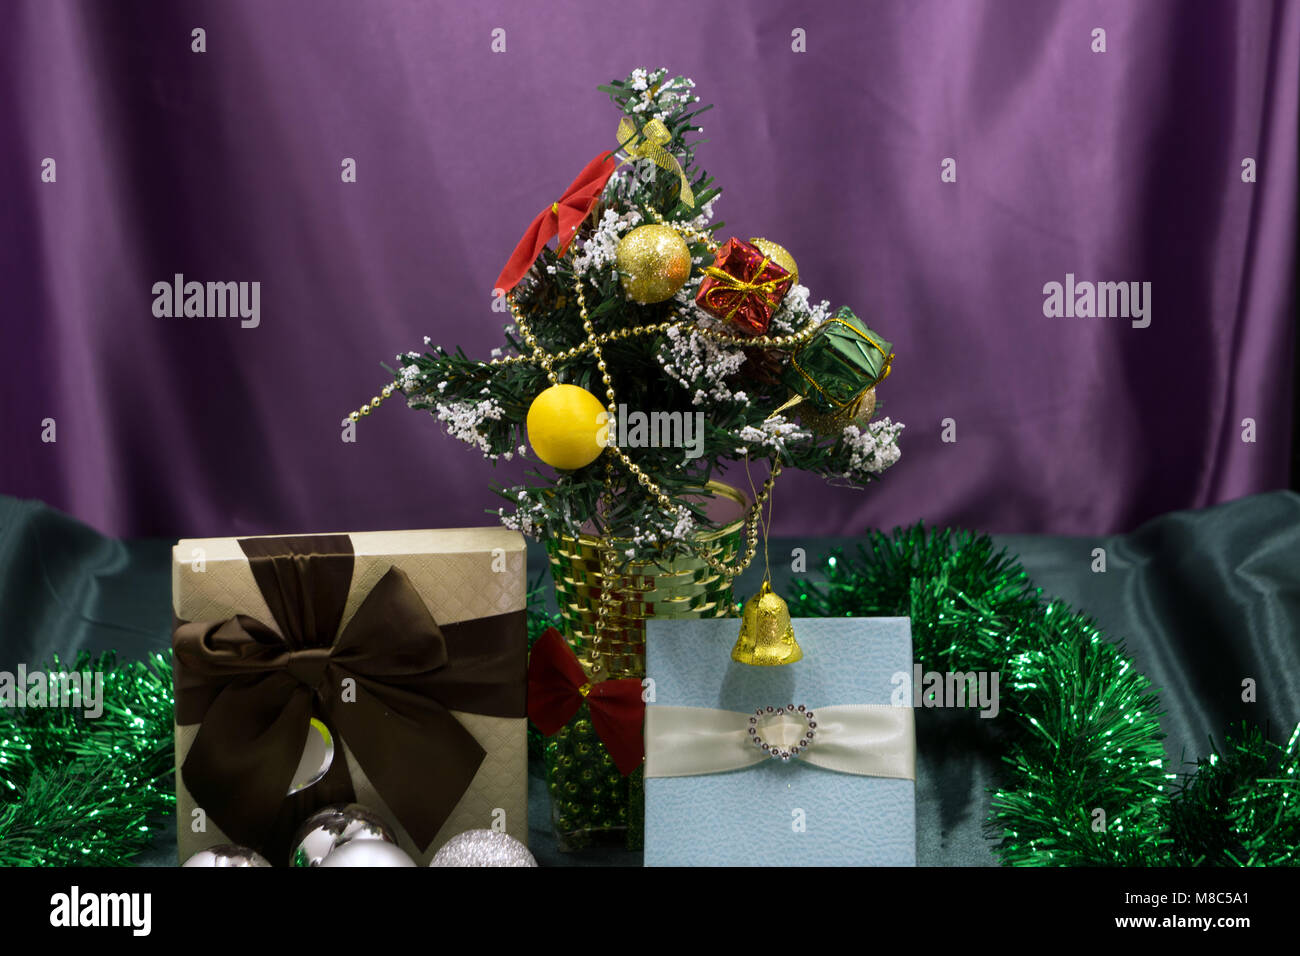 giftboxes pink and white christmas decorations balls hanging on a decorative white christmas tree concept new year celebration background